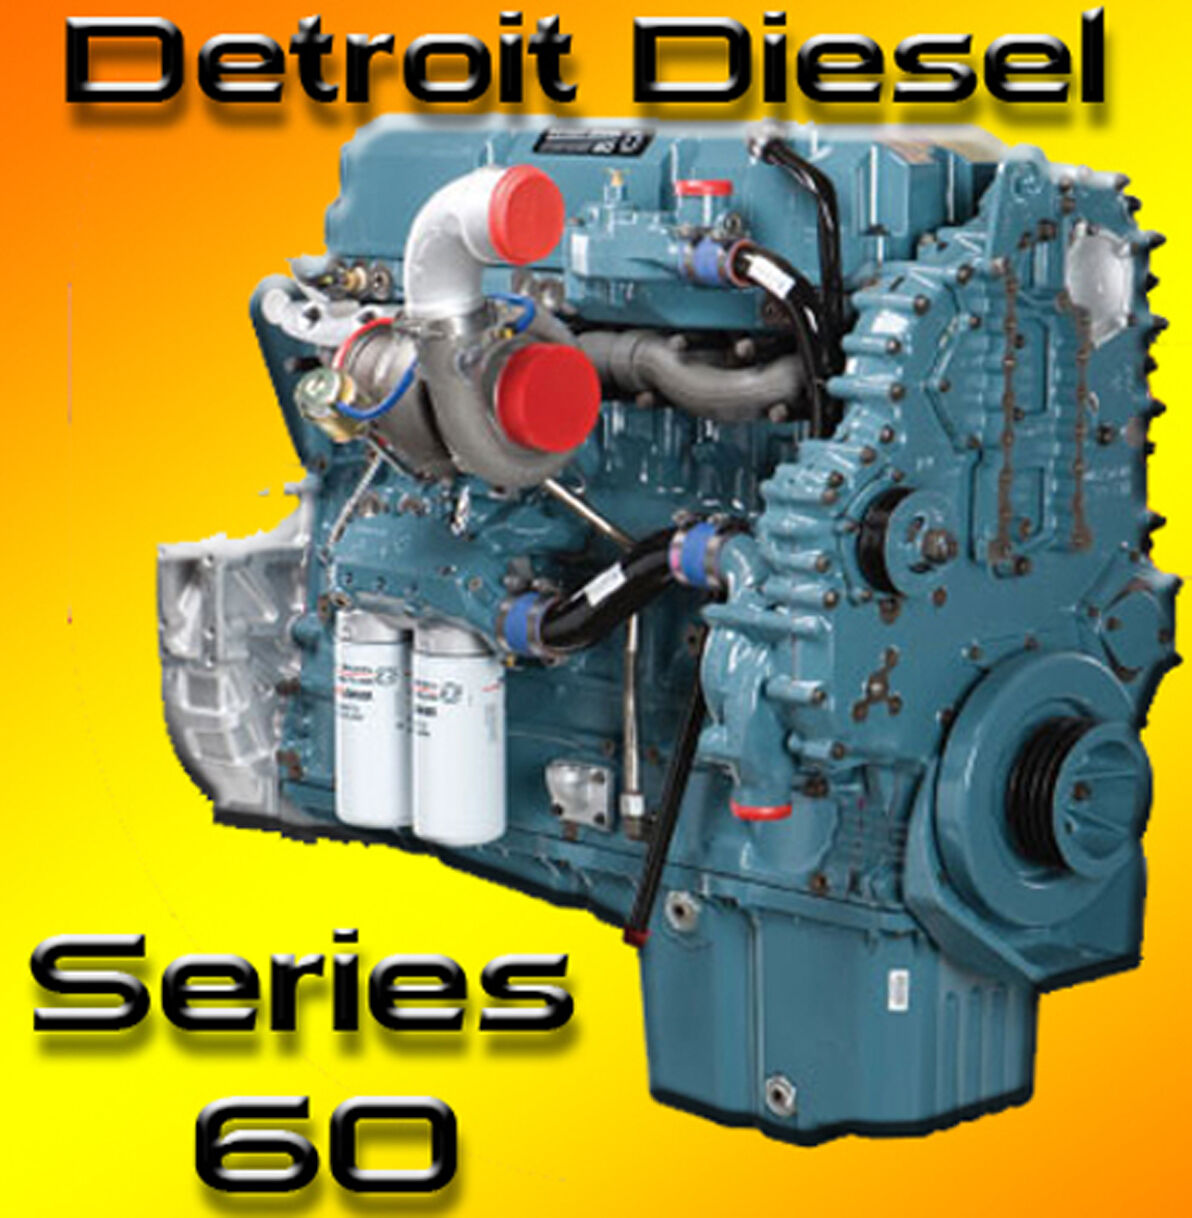 Detroit Diesel Series 60 Complete Repair Service Workshop Manual Latest  Revision 1 of 1Only 5 available ...